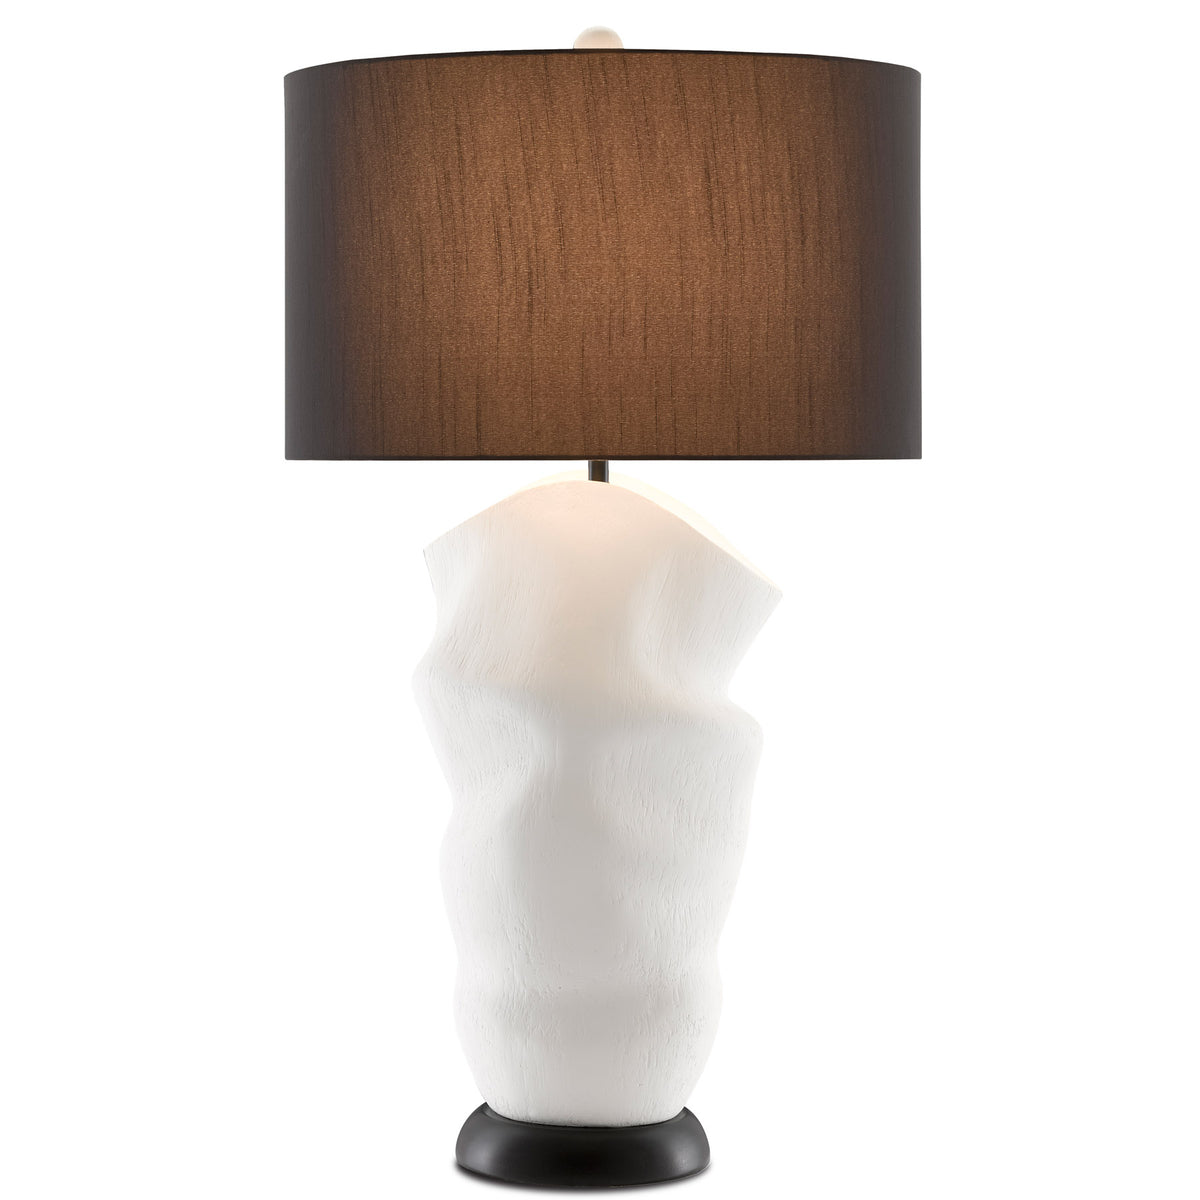 Zucchero Table Lamp